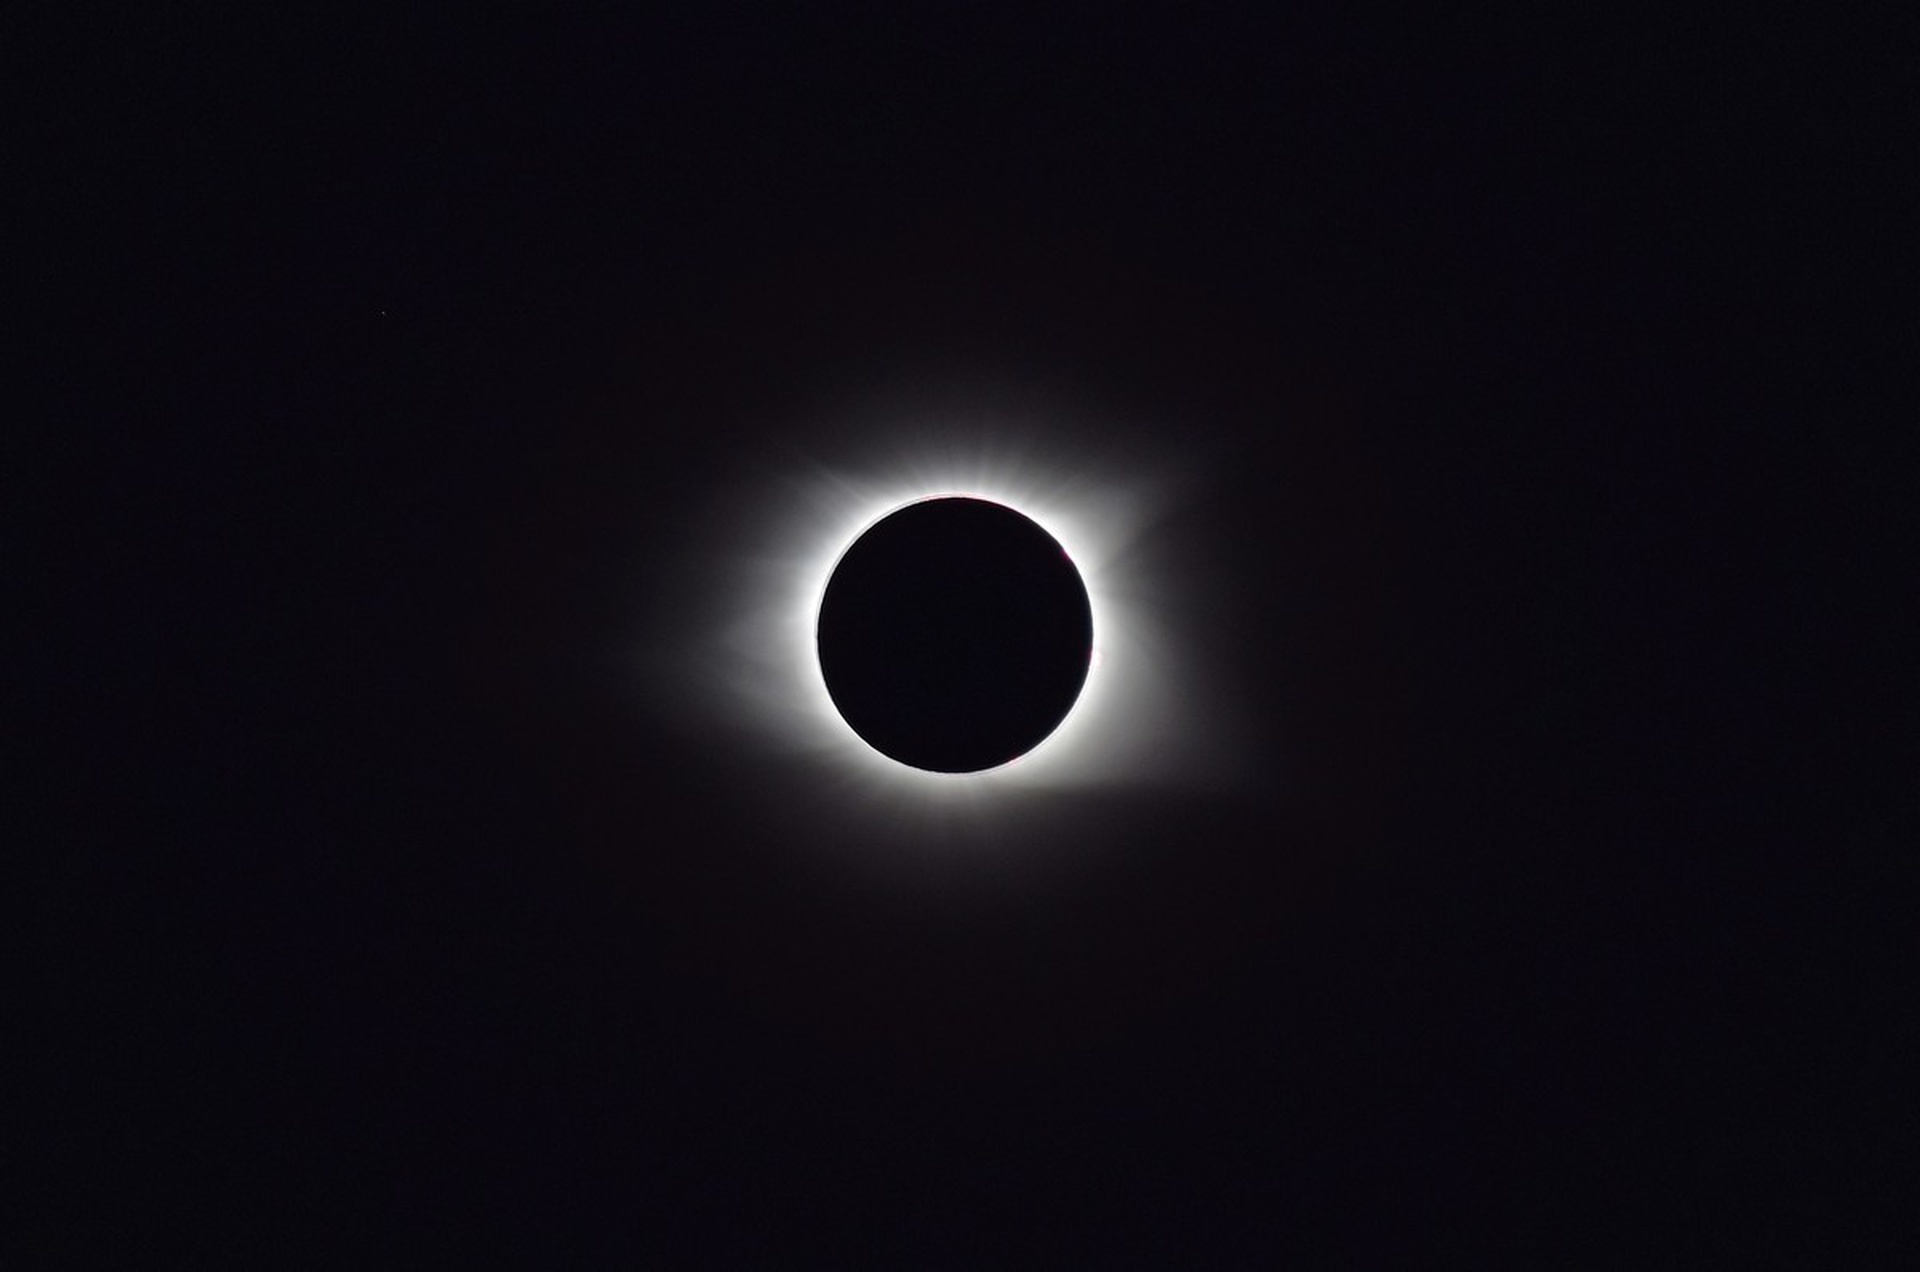 solar-eclipse-2017-2670351_1920.jpg